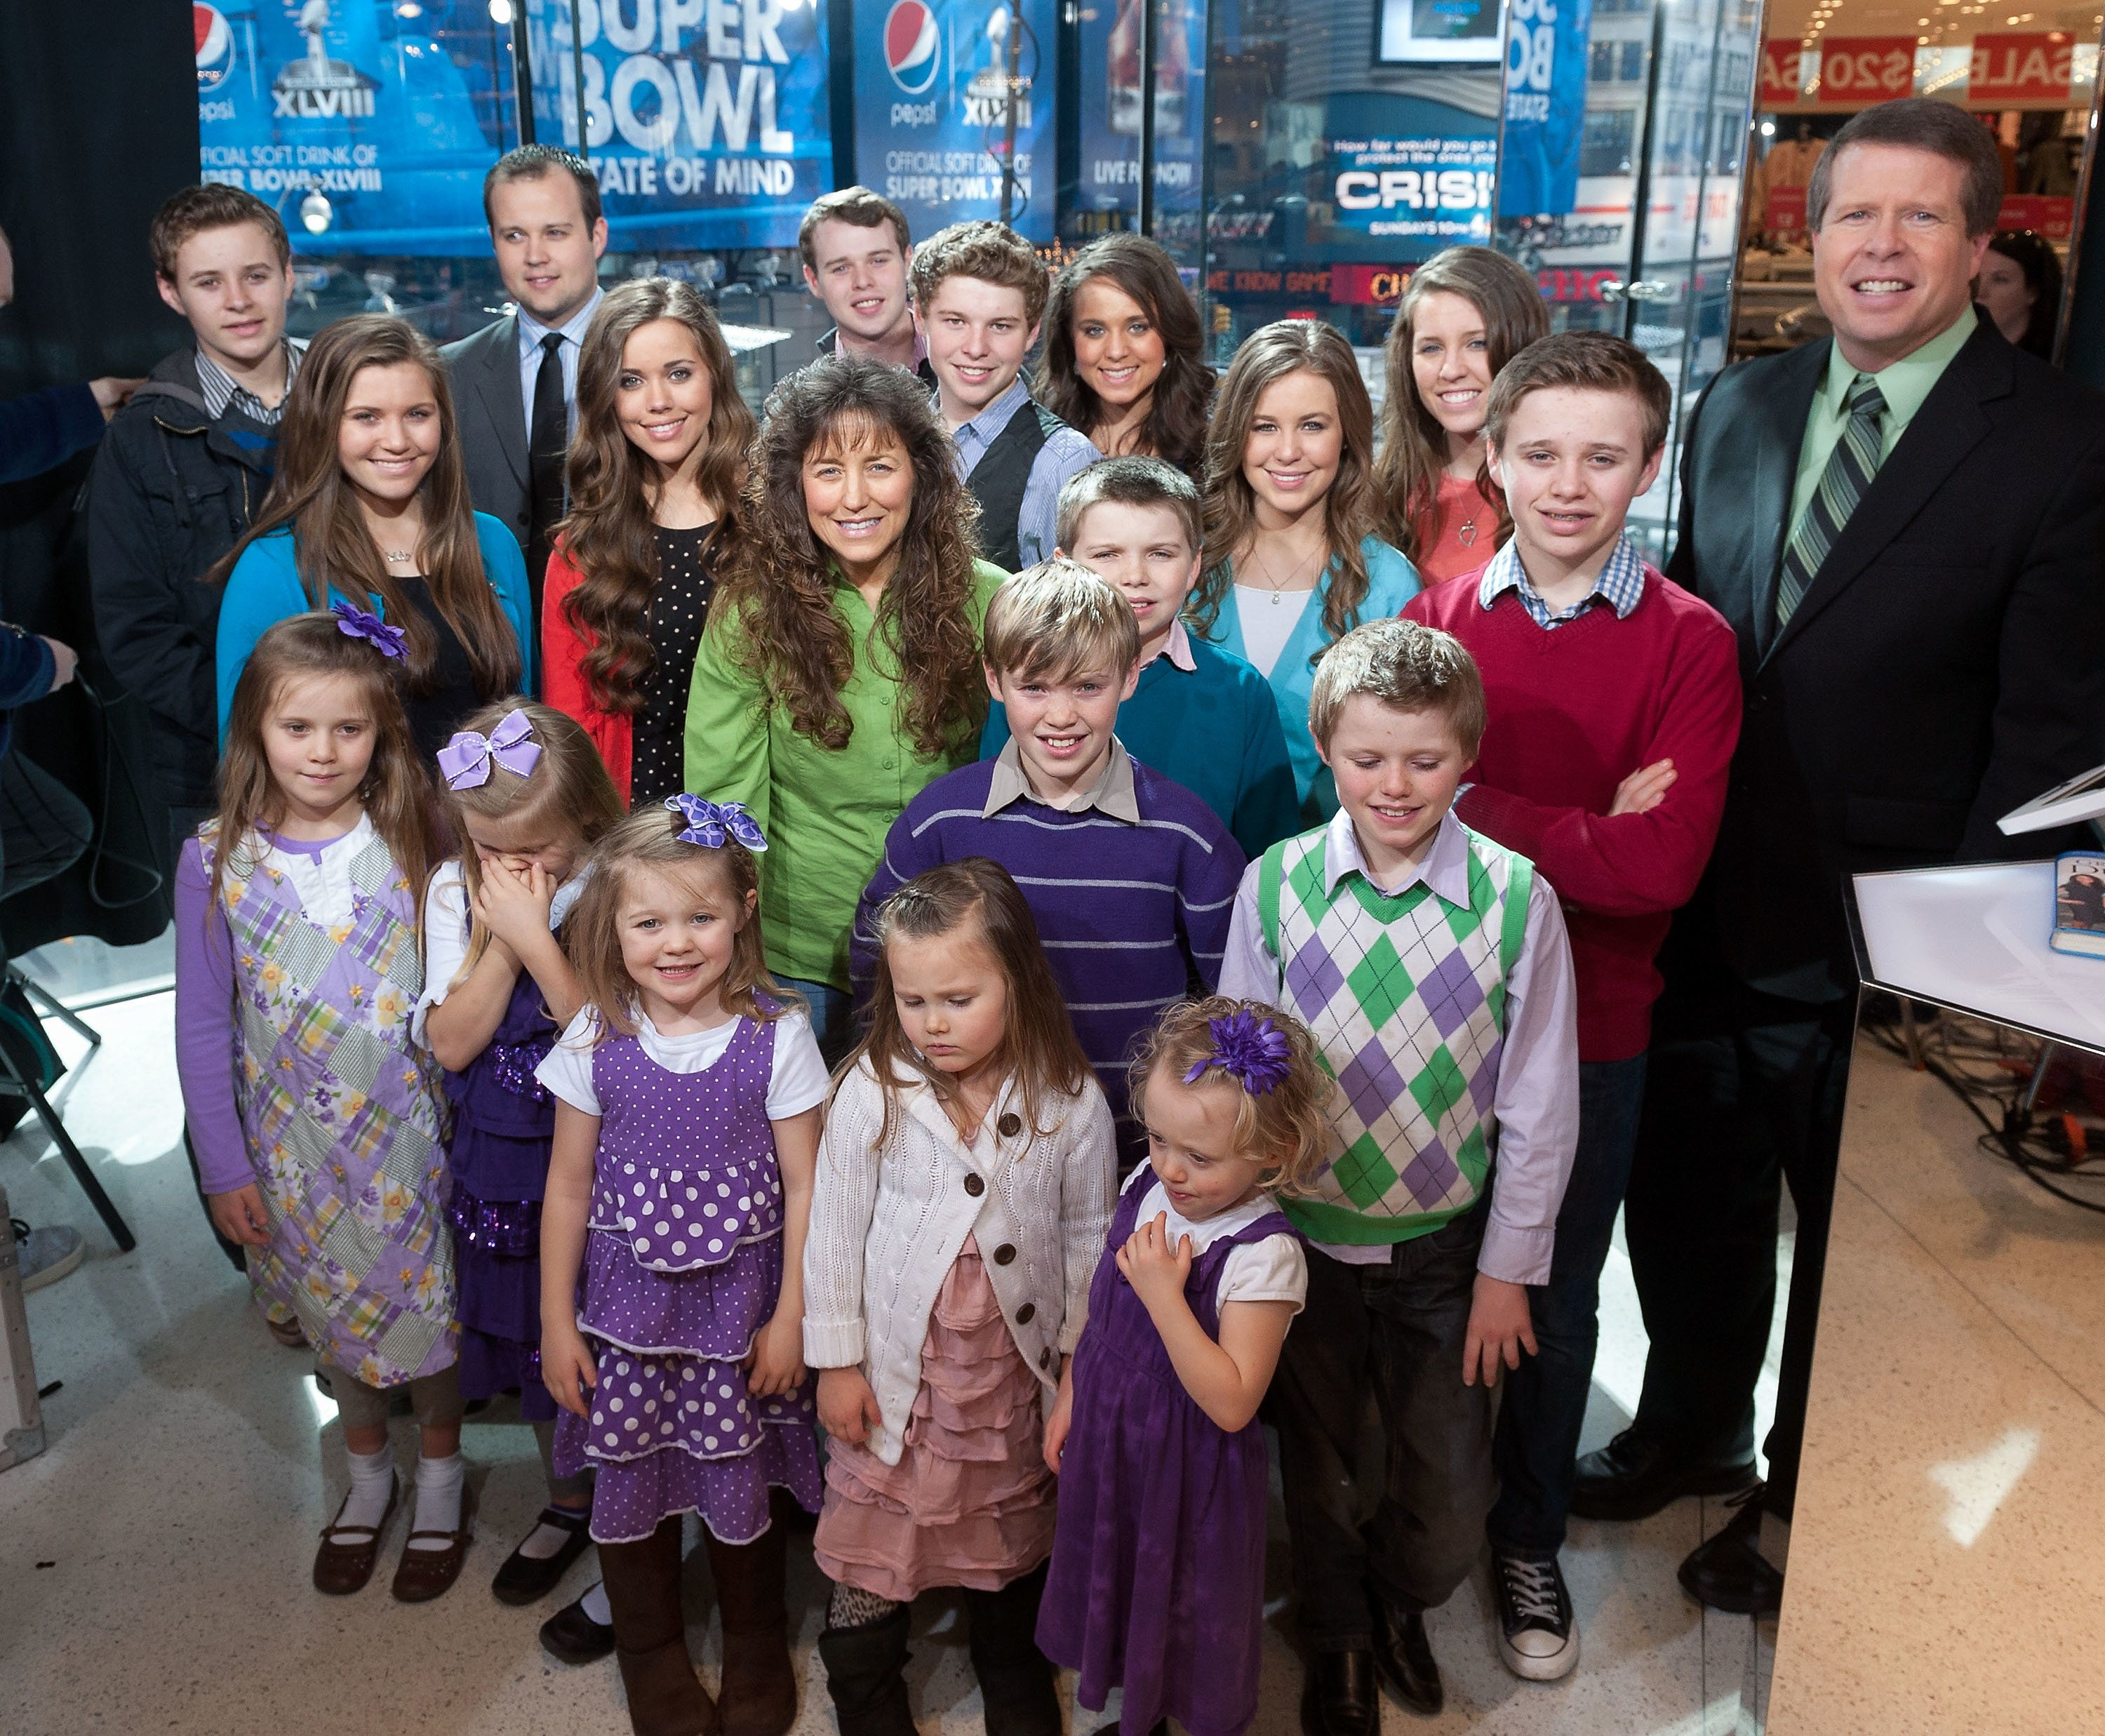 NEW YORK, NY - MARCH 11:  The Duggar family visits 'Extra' at their New York studios at H&M in Times Square on March 11, 2014 in New York City.  (Photo by D Dipasupil/Getty Images for Extra)